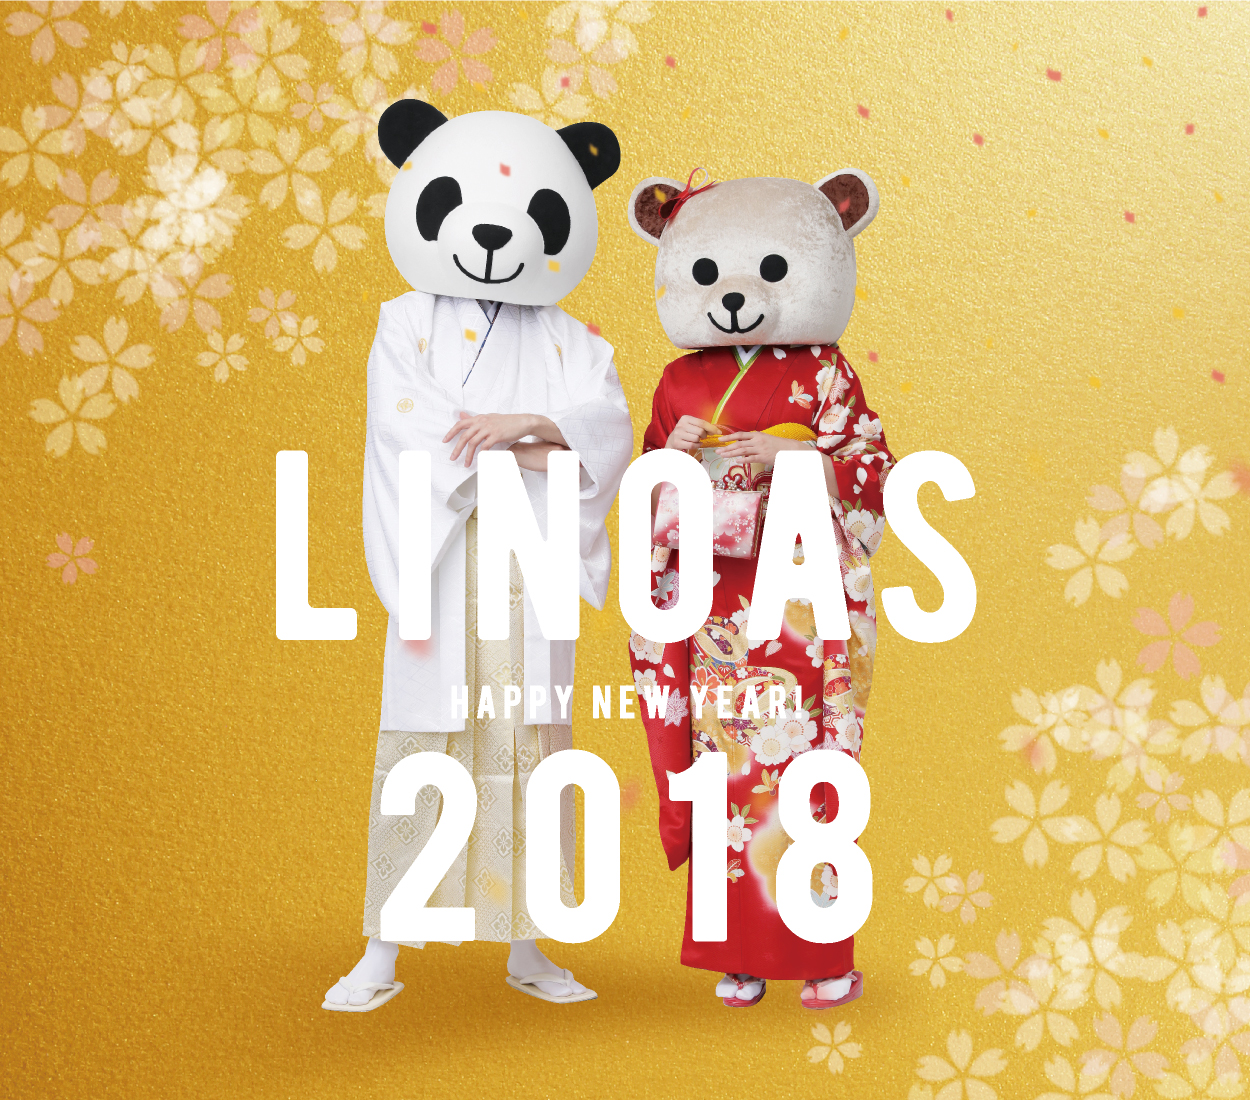 LINOAS HAPPY NEW YEAR 2018